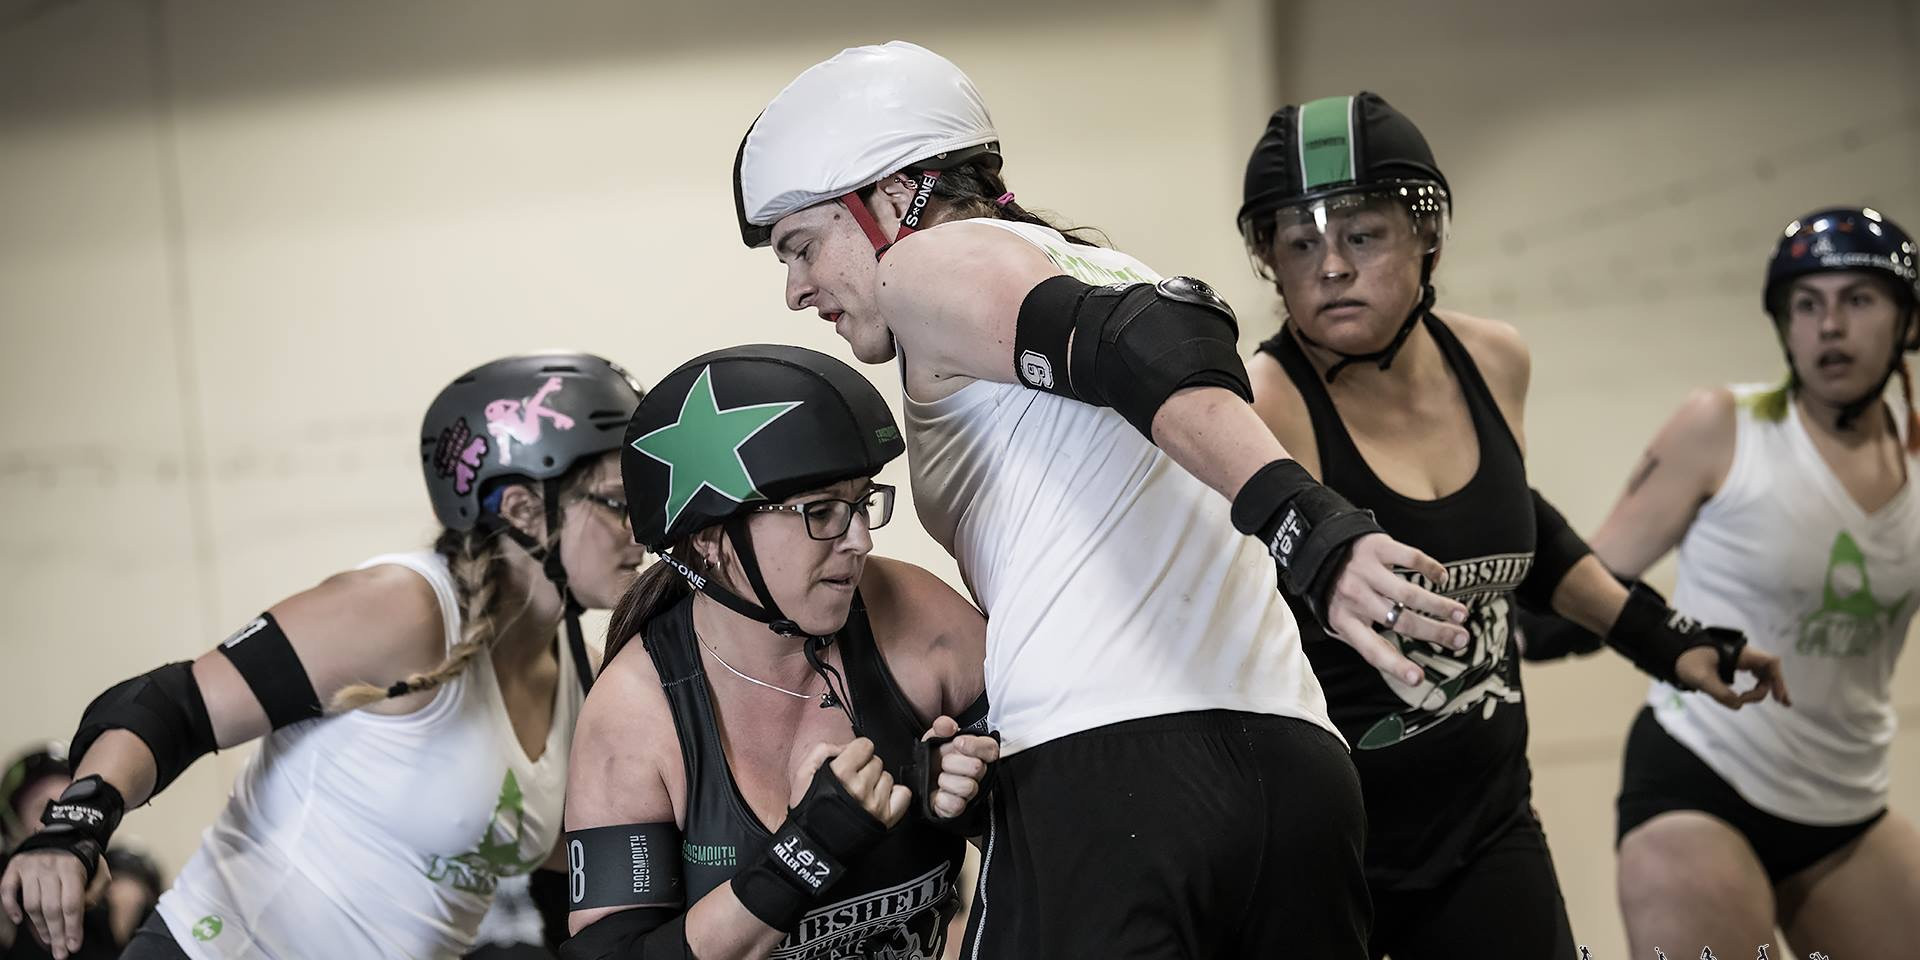 Jammer K-Loca giving a little hip action